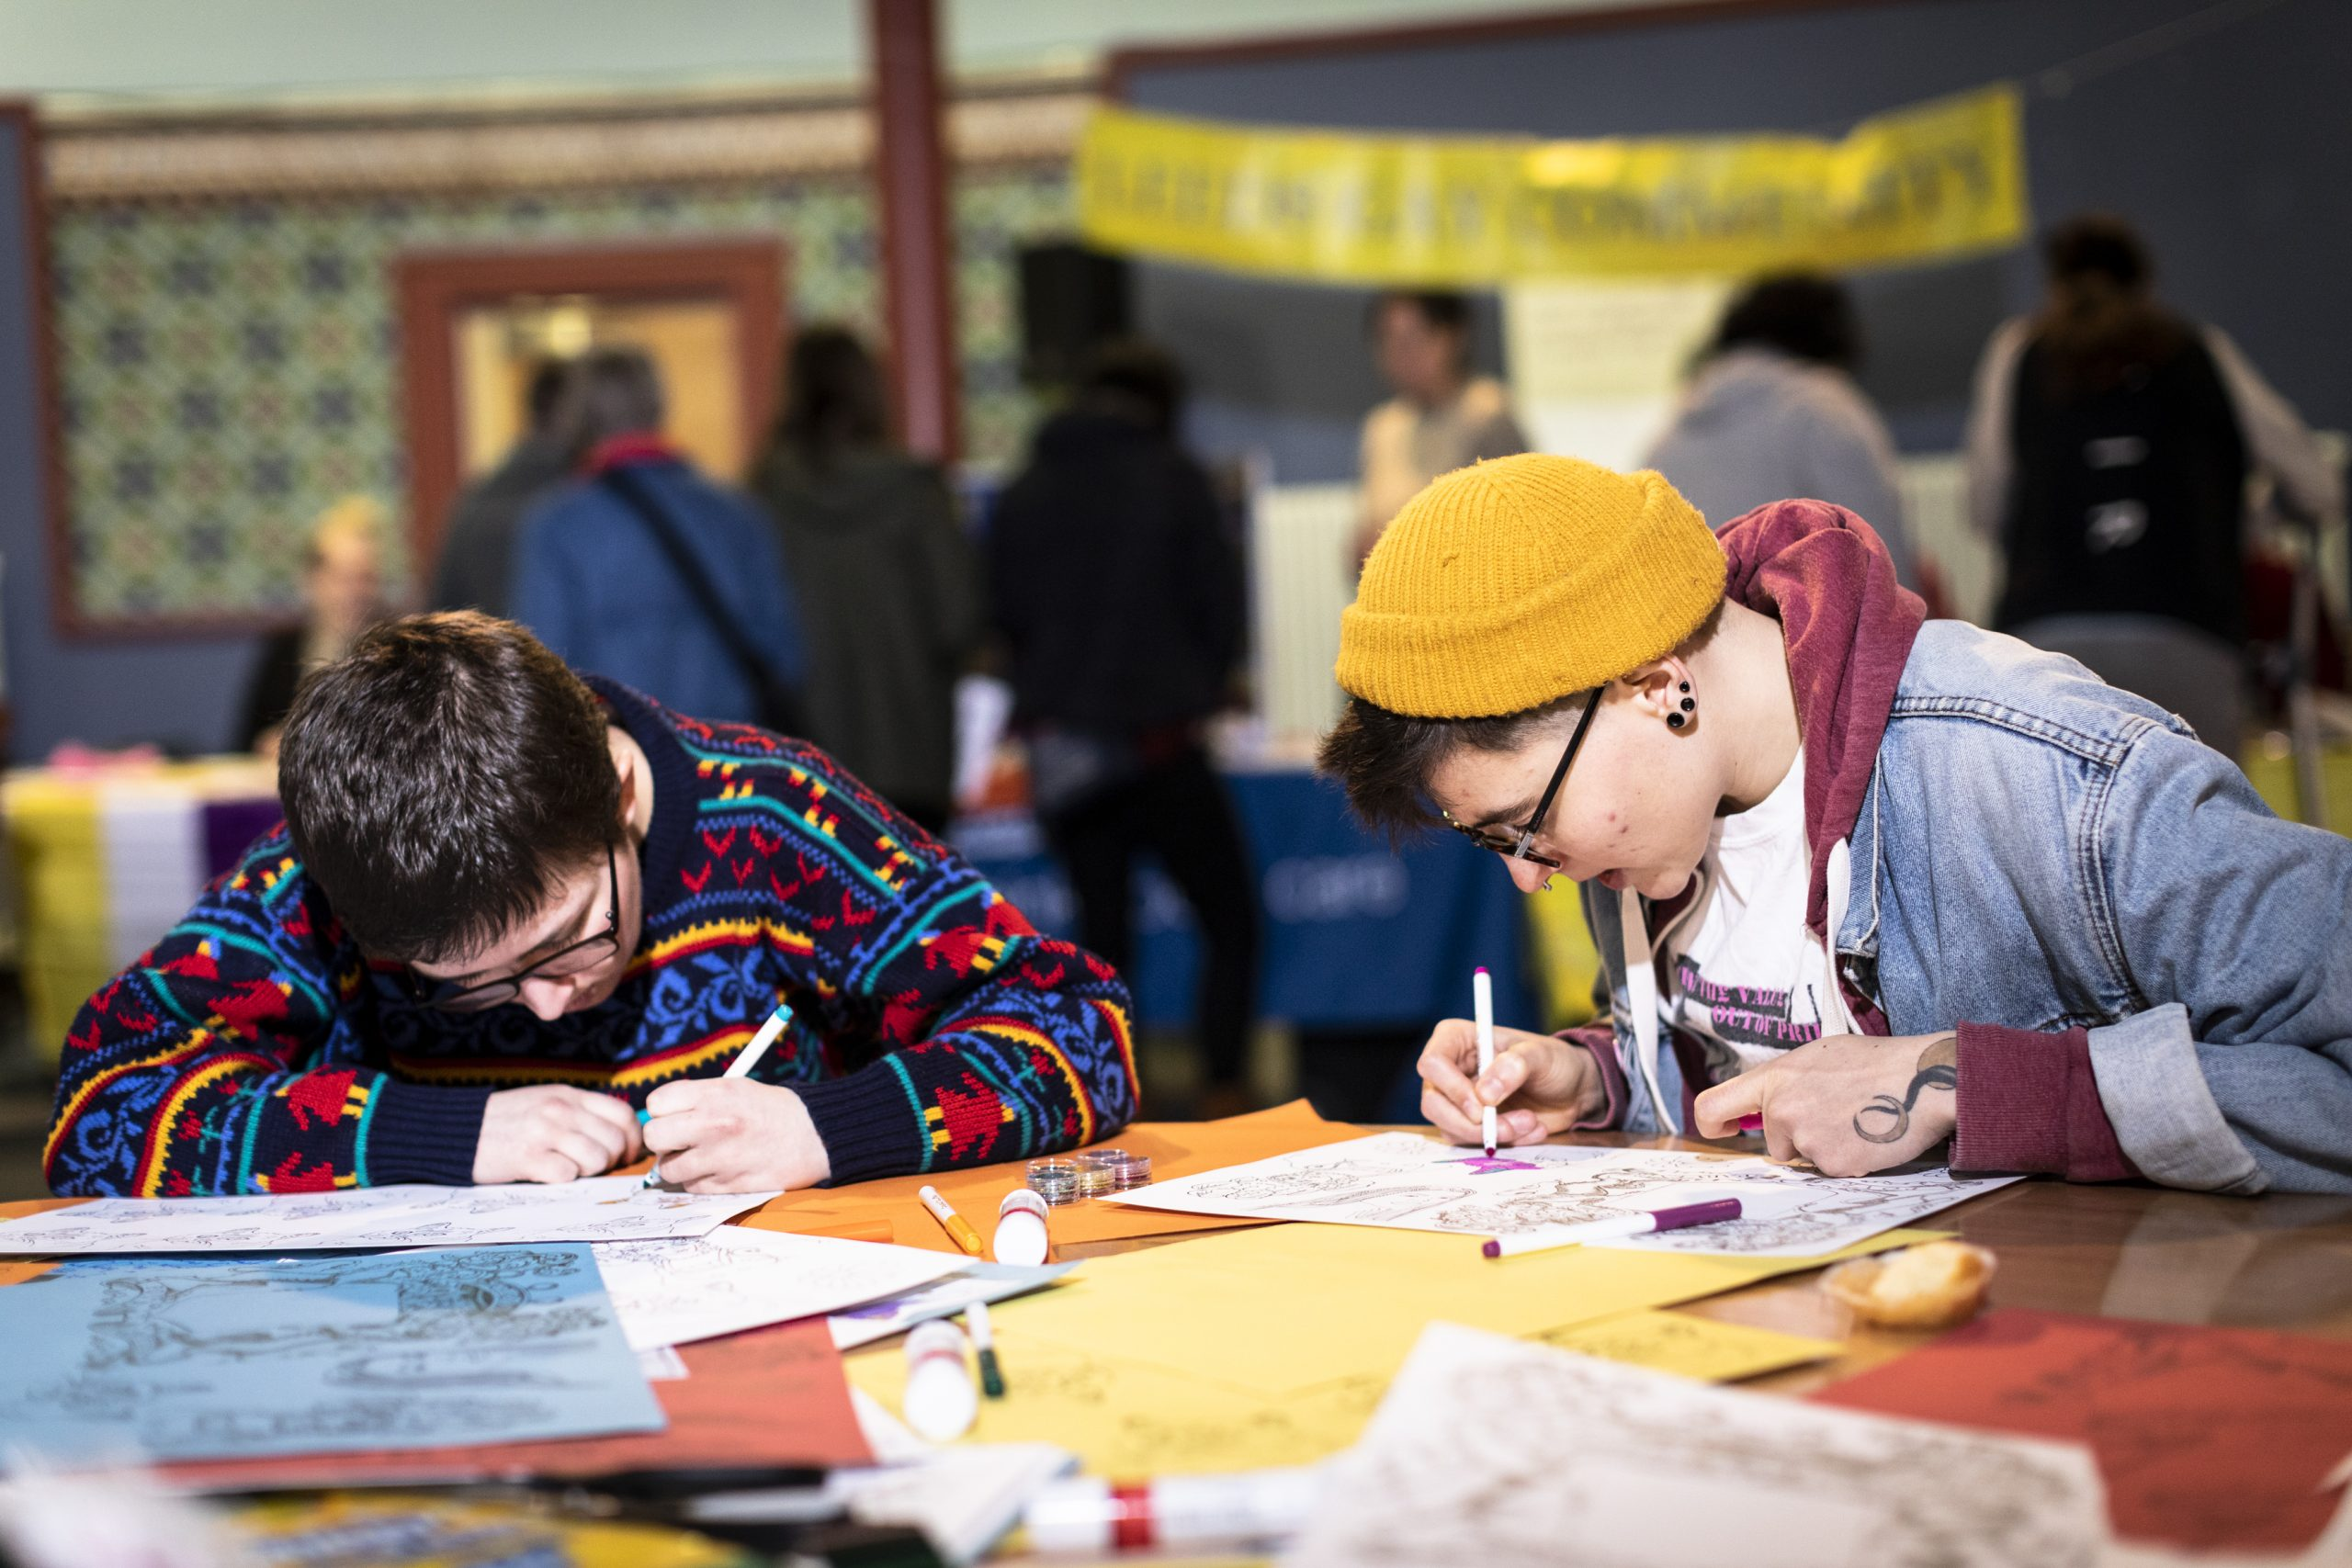 Young people use pens to decorate the pages of a zine